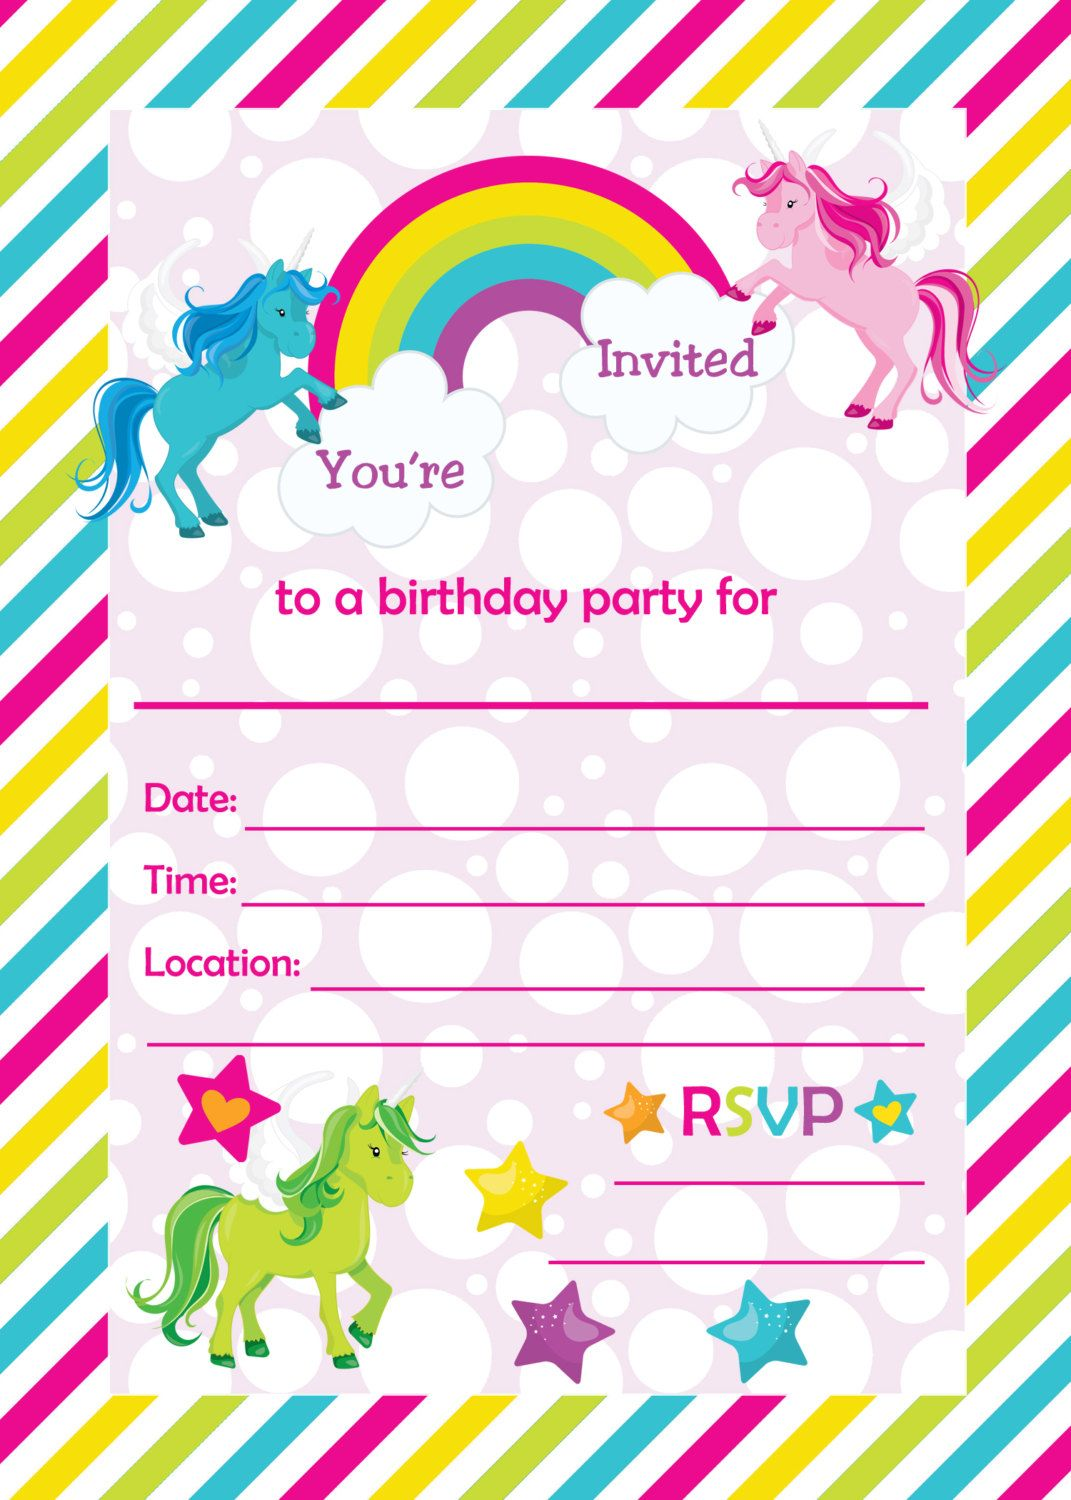 picture about Free Printable Unicorn Invitations identified as Totally free Printable Golden Unicorn Birthday Invitation